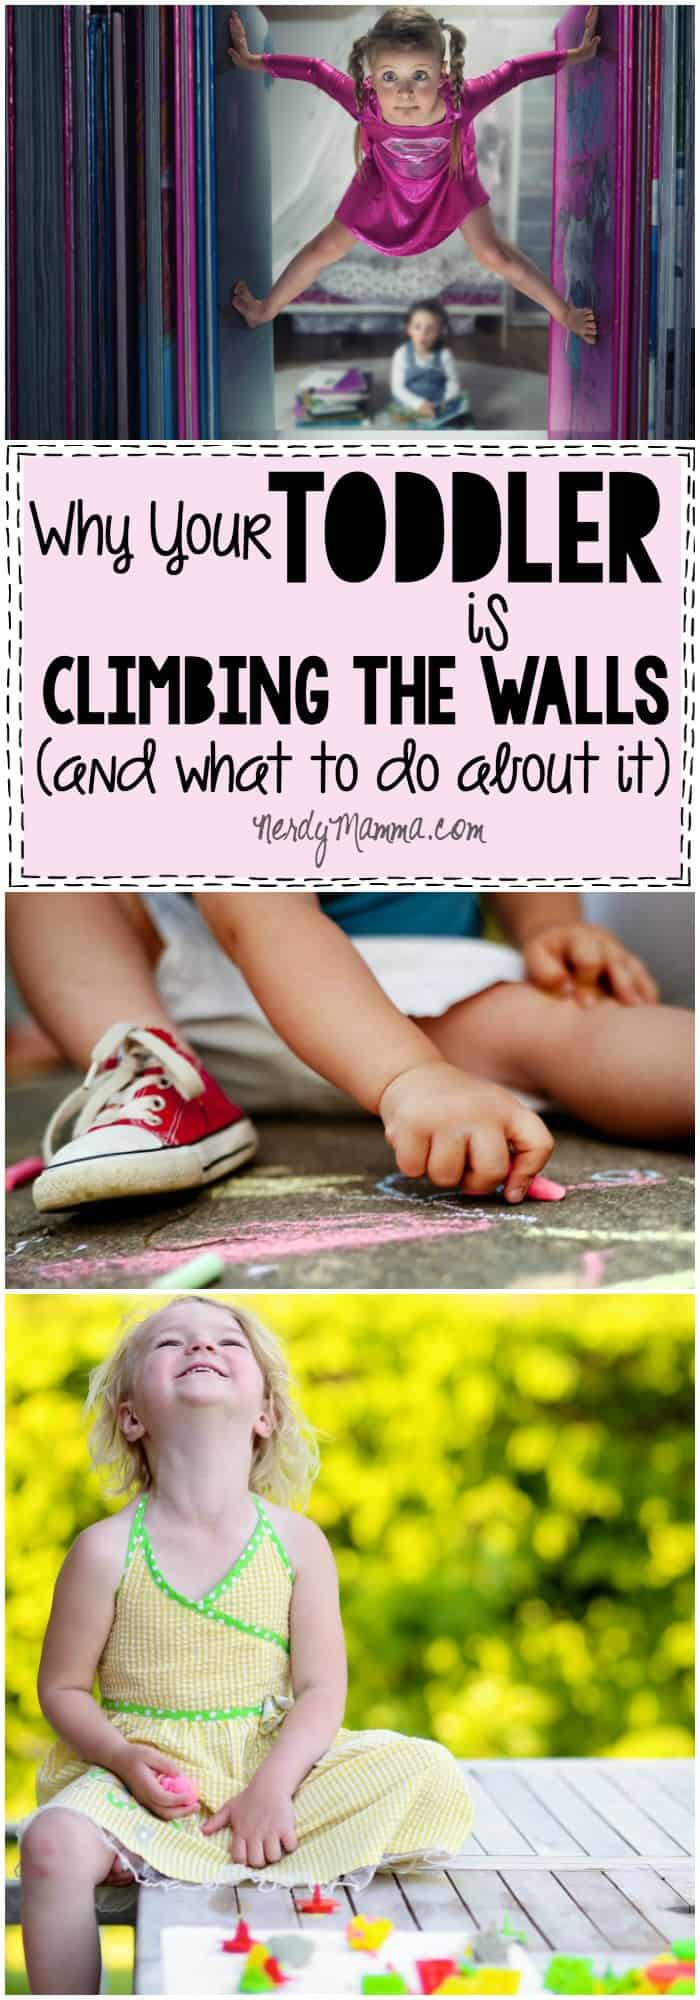 I love these thoughts on Why Your Toddler is Climbing the Walls--and the ideas for how to deal with it. So funny!